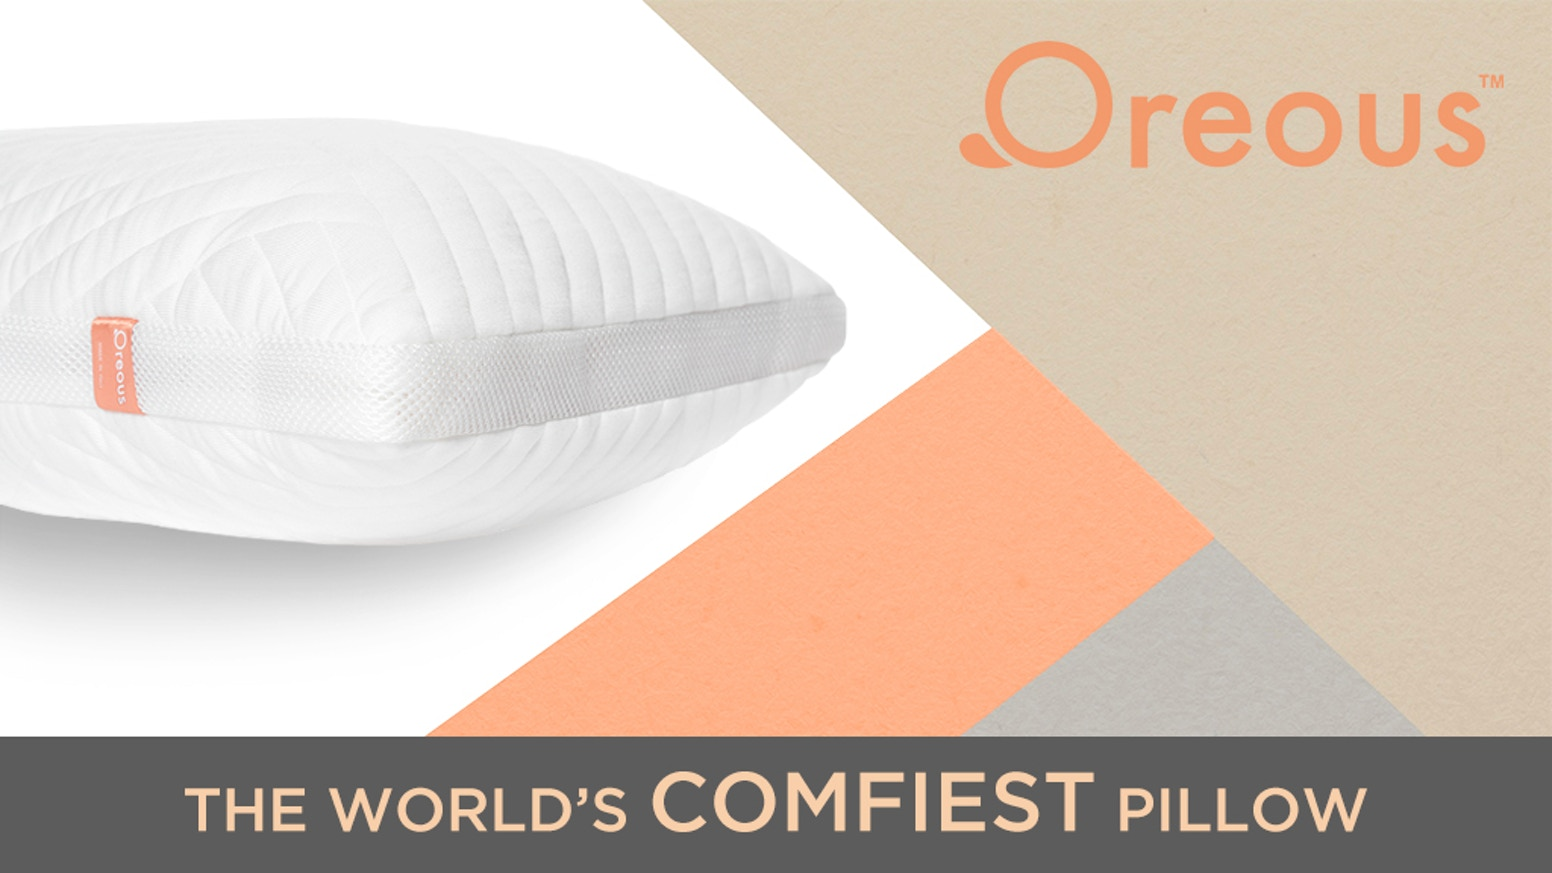 the oreoustm pillow by mark reissi kickstarter With comfiest pillow in the world